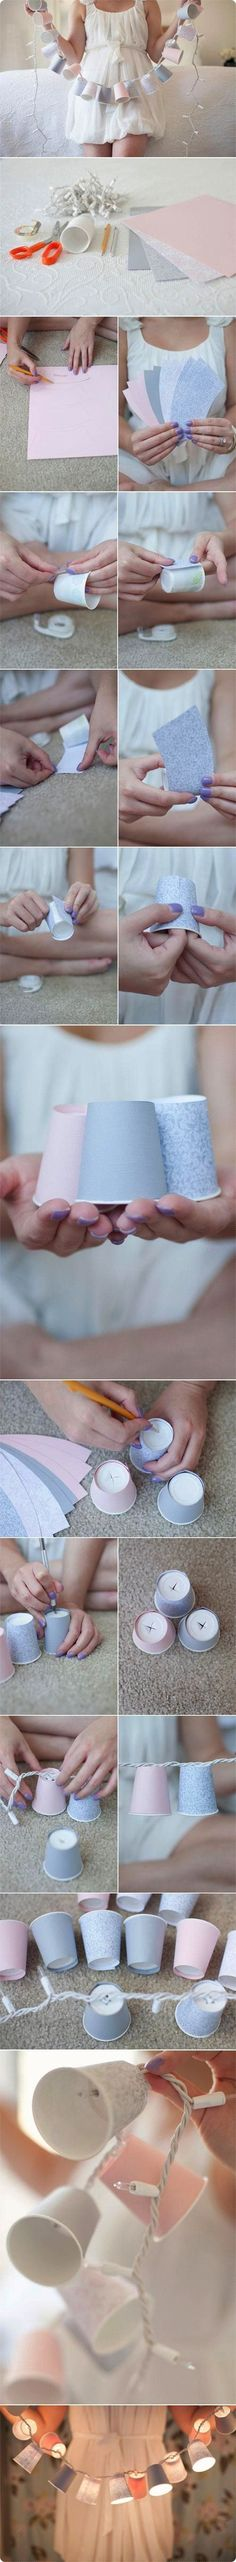 DIY  ::  Decorative Paper Cups Garland Lights